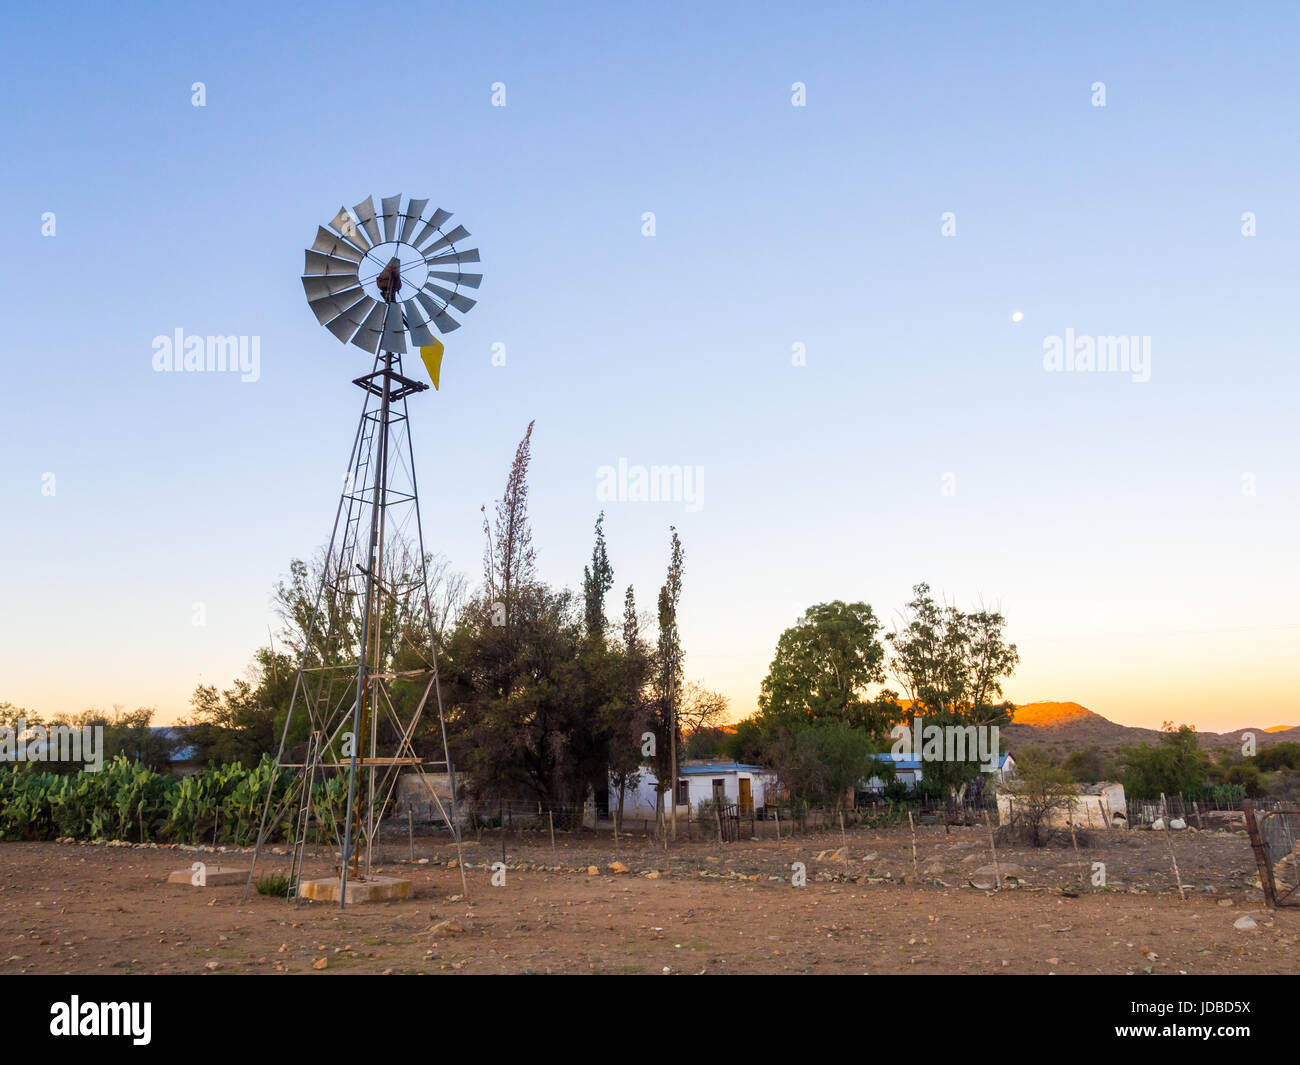 Windmill next to a farm on the road to Solitaire, Khomas Highlands, Namibia. - Stock Image